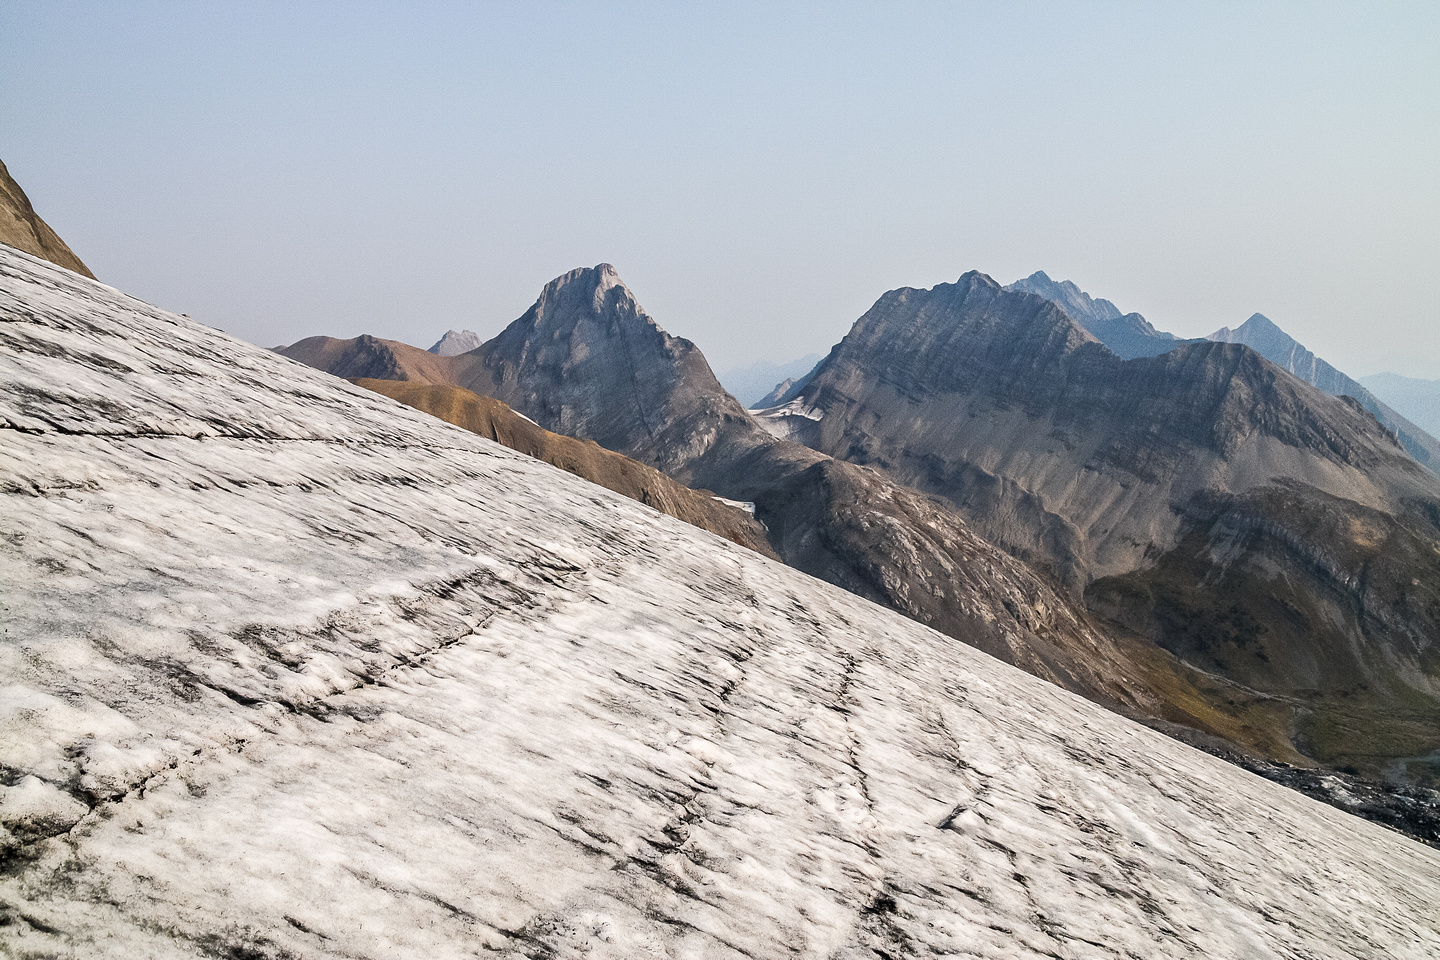 Looking north off the gently angled glacier towards Northover.